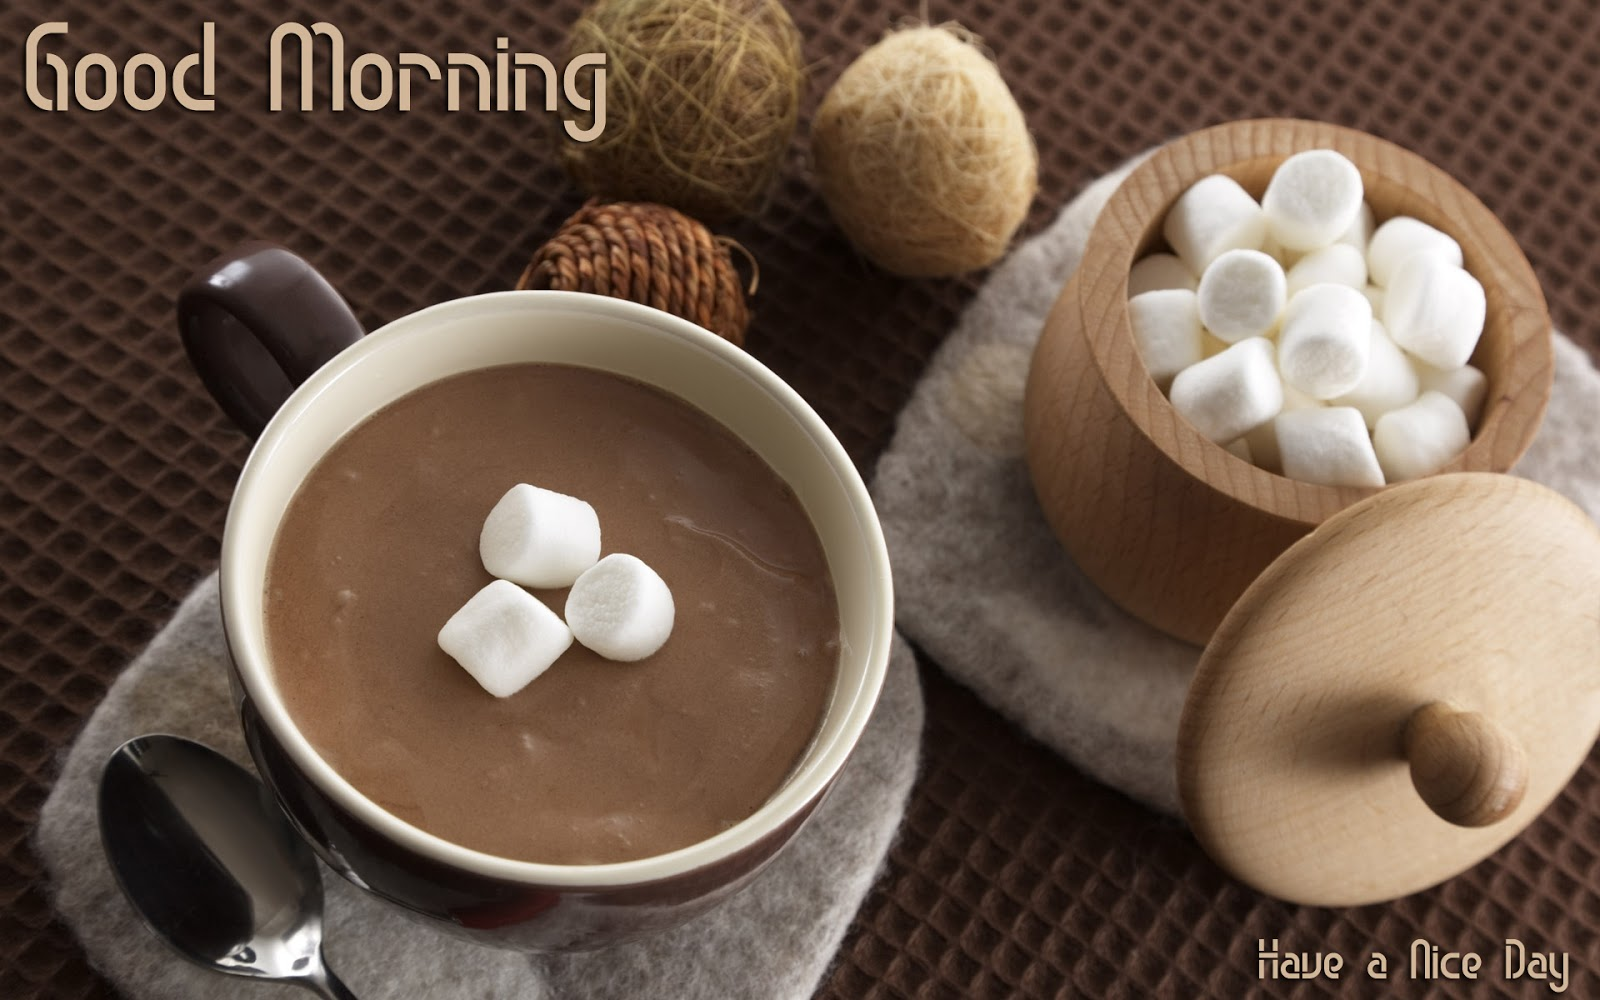 Good Morning Images with Hot Coffee